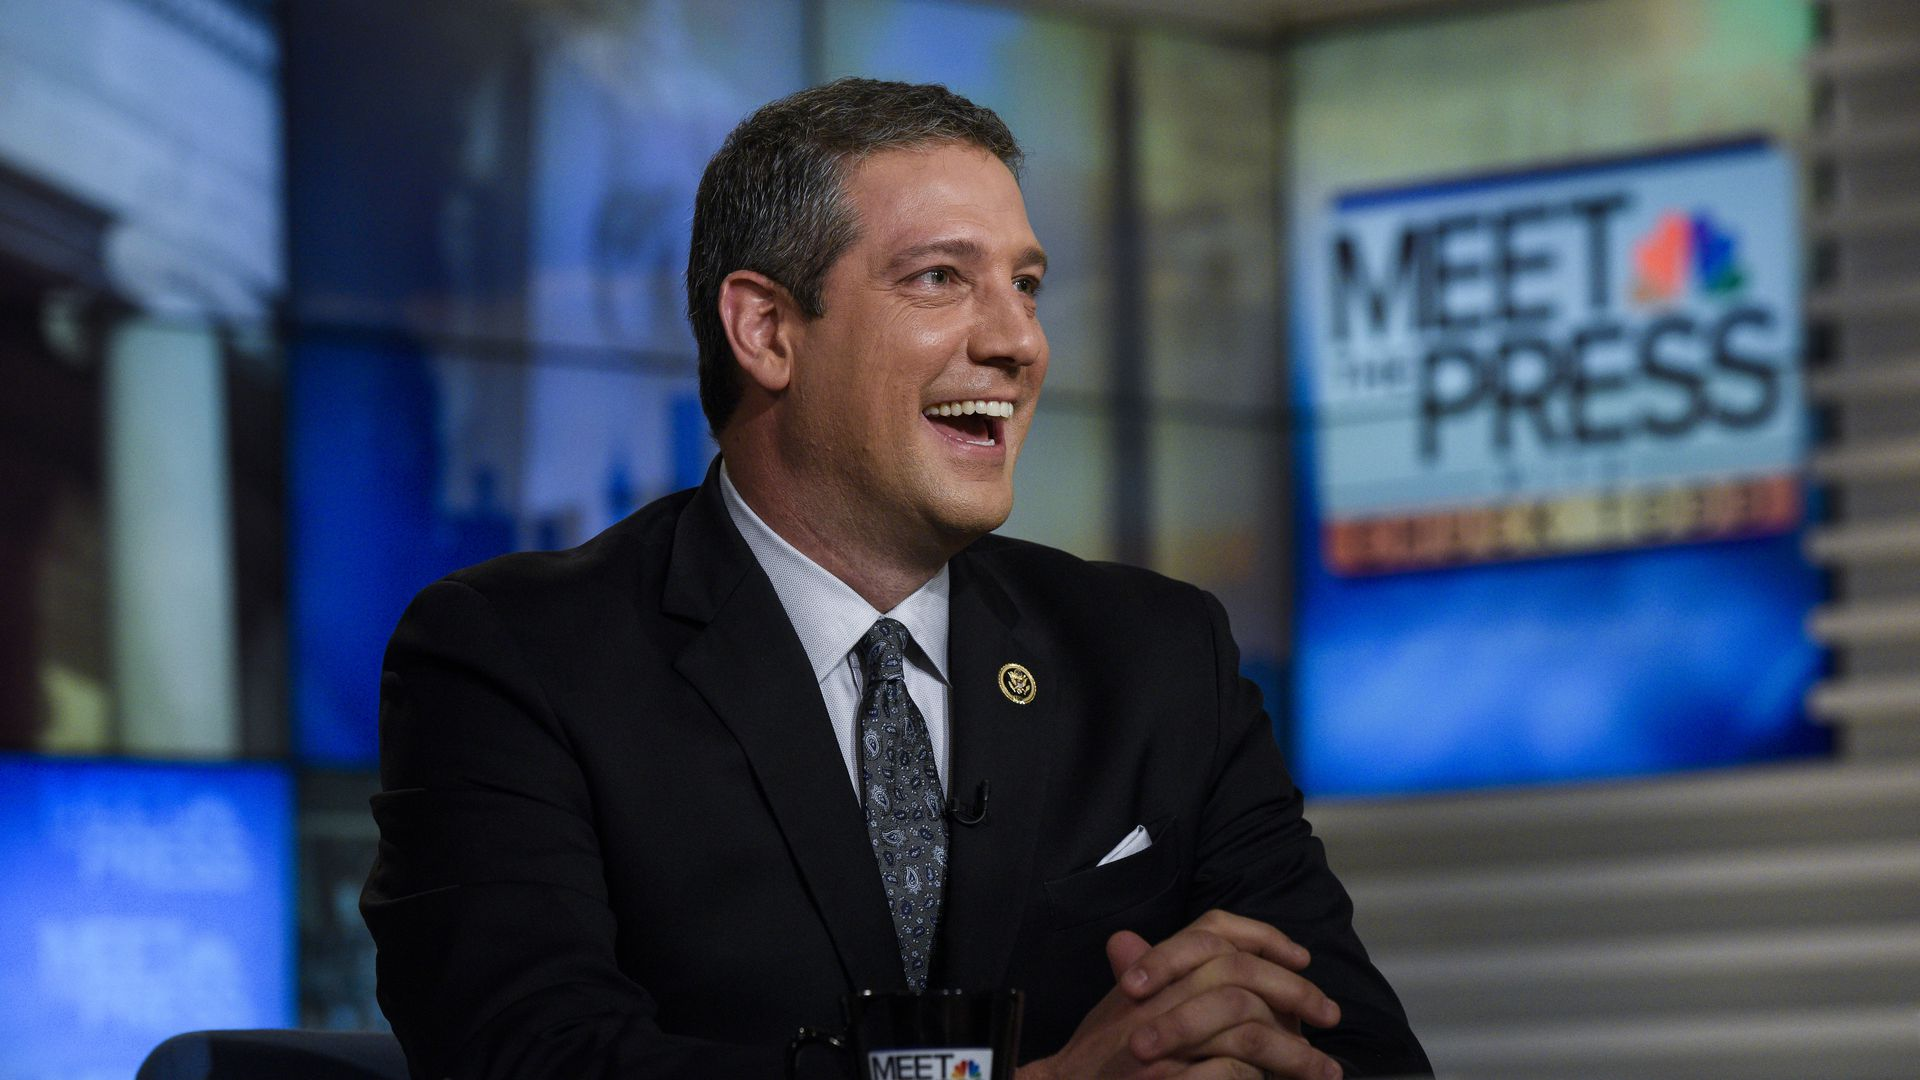 Tim Ryan is pictured here laughing on the set of Meet the Press.